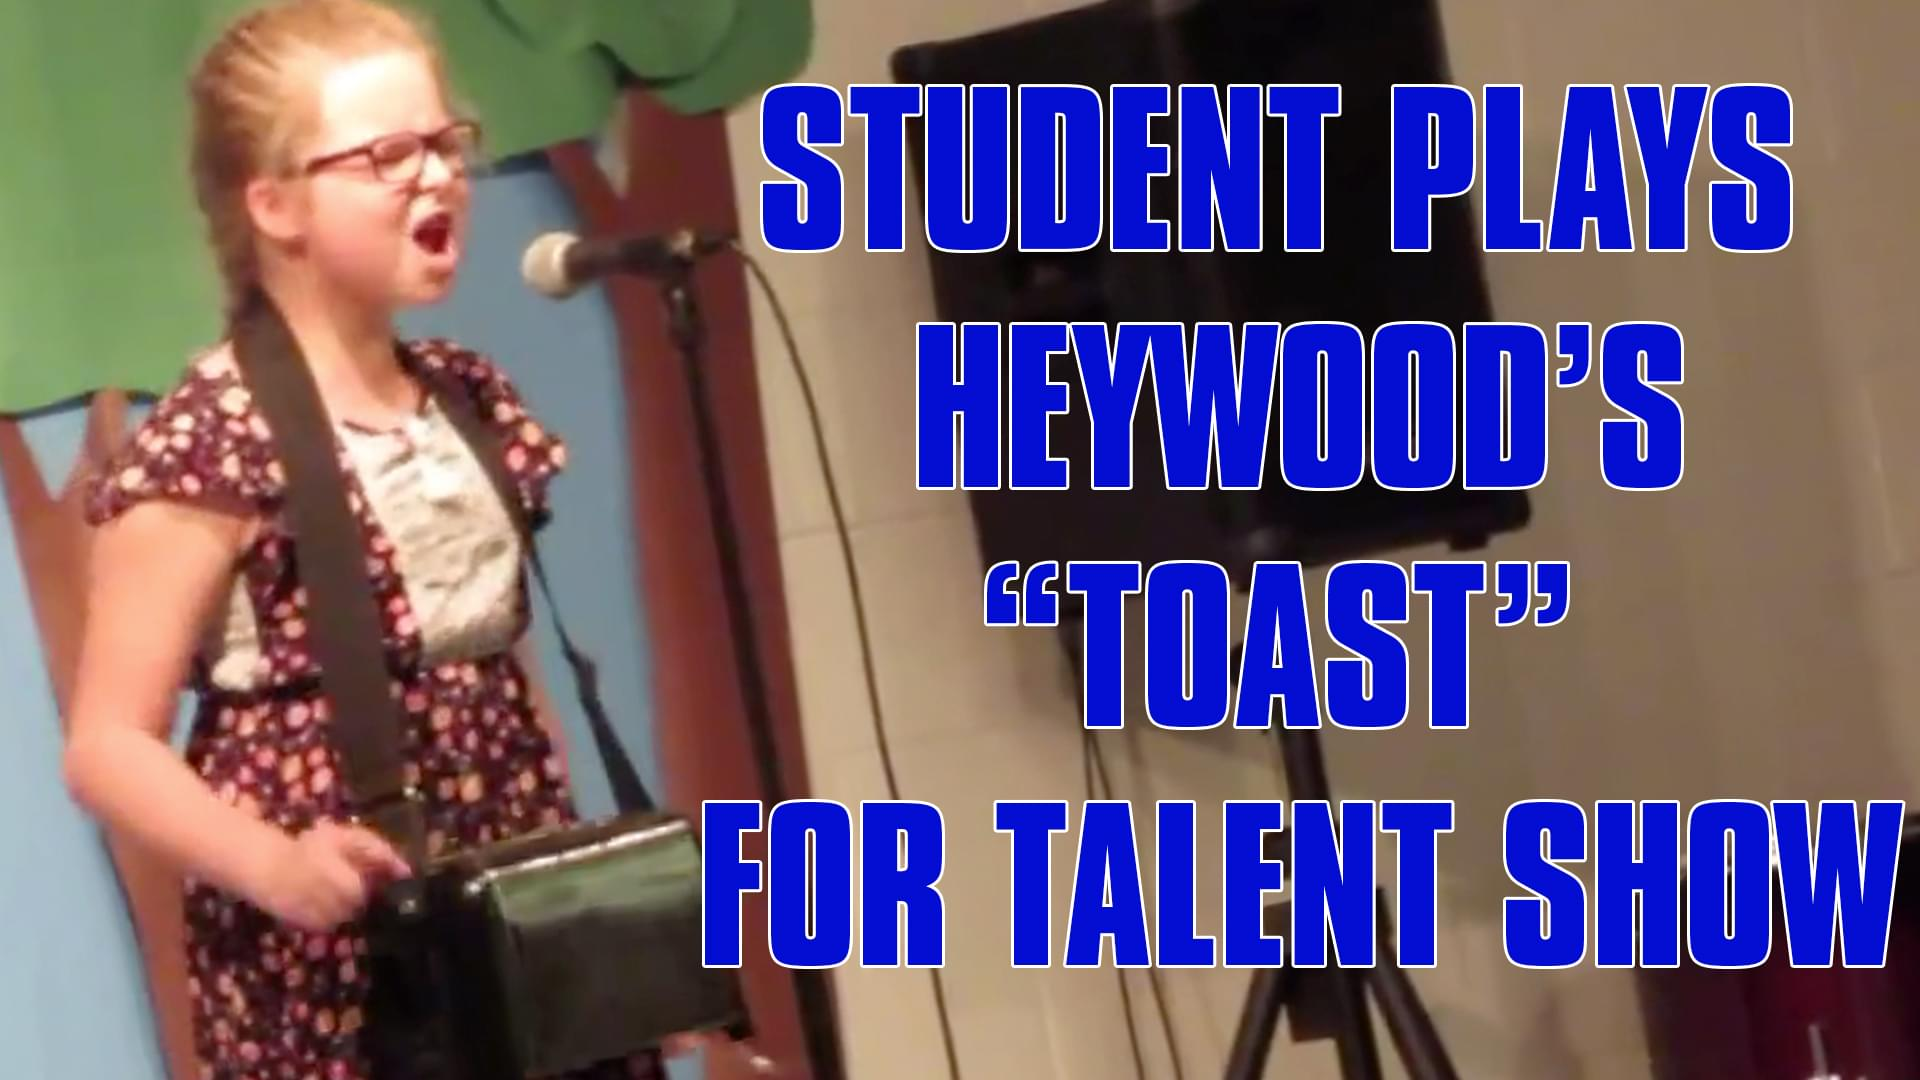 Student Plays 'Toast' for Talent Show